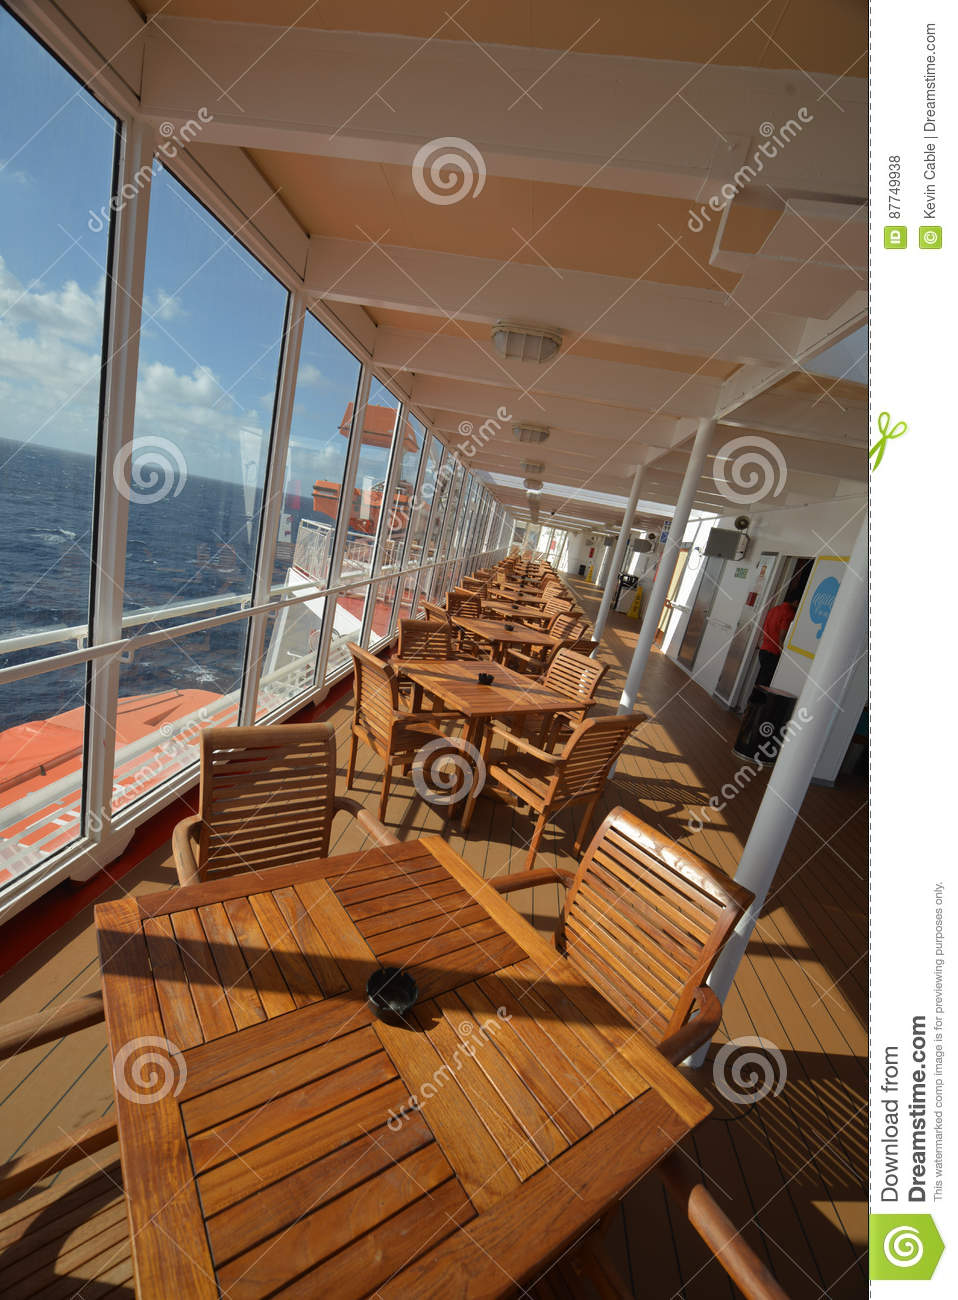 Download Cruise Ship For Eating  Images